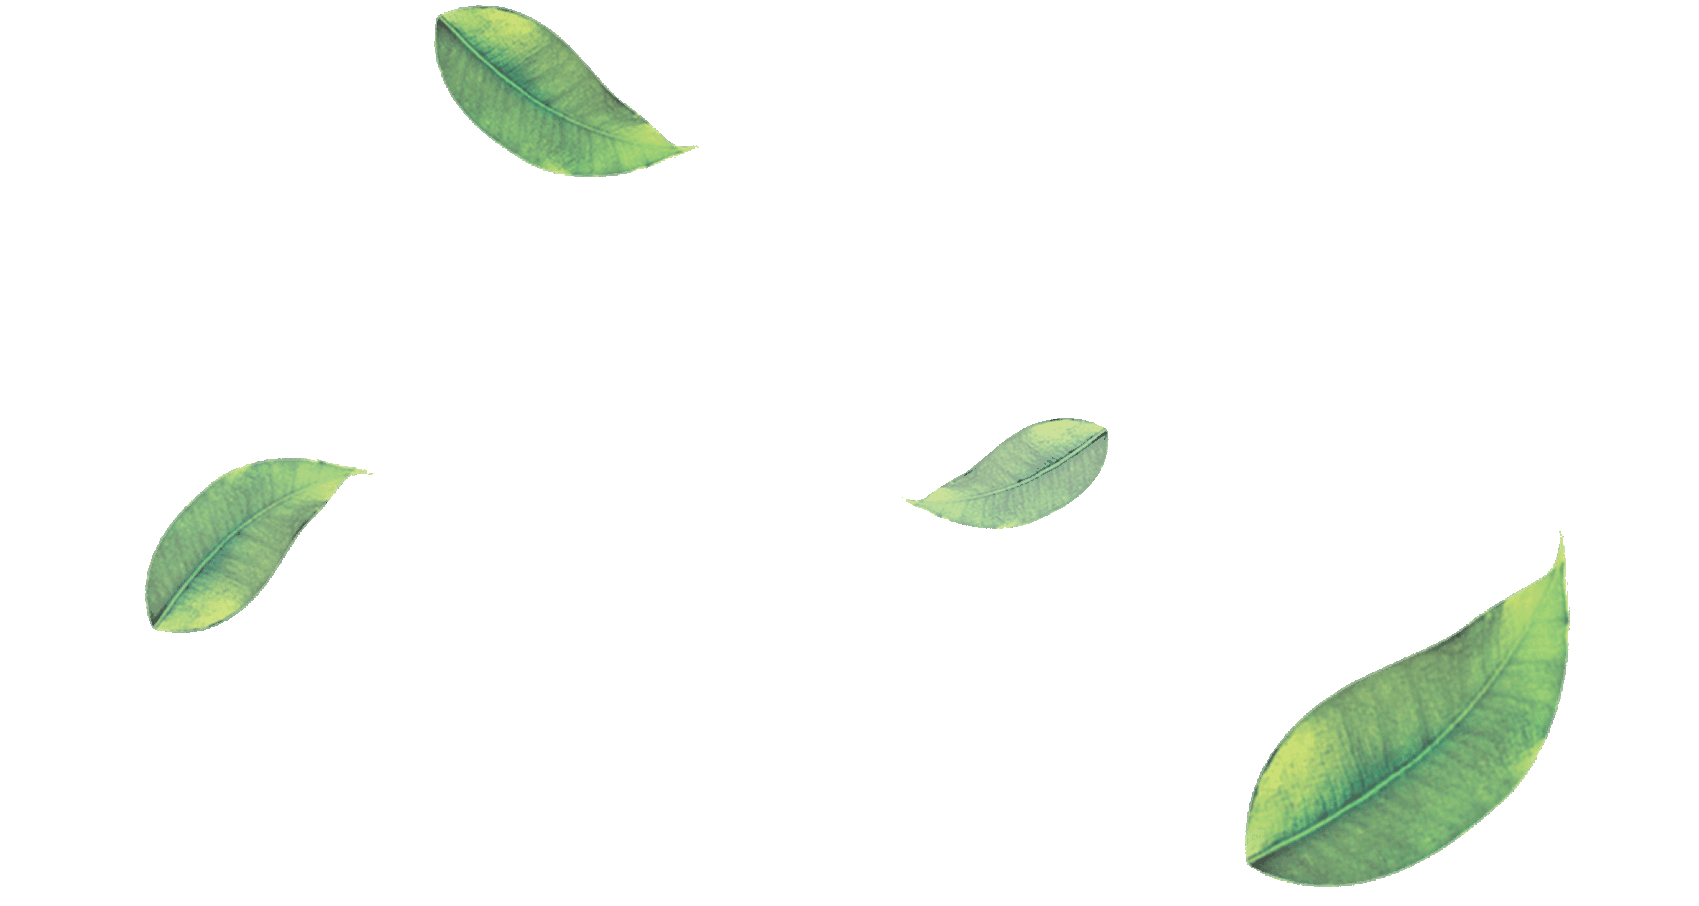 Free Download Png And Vector: Vector Free Png Leaf Download #38628